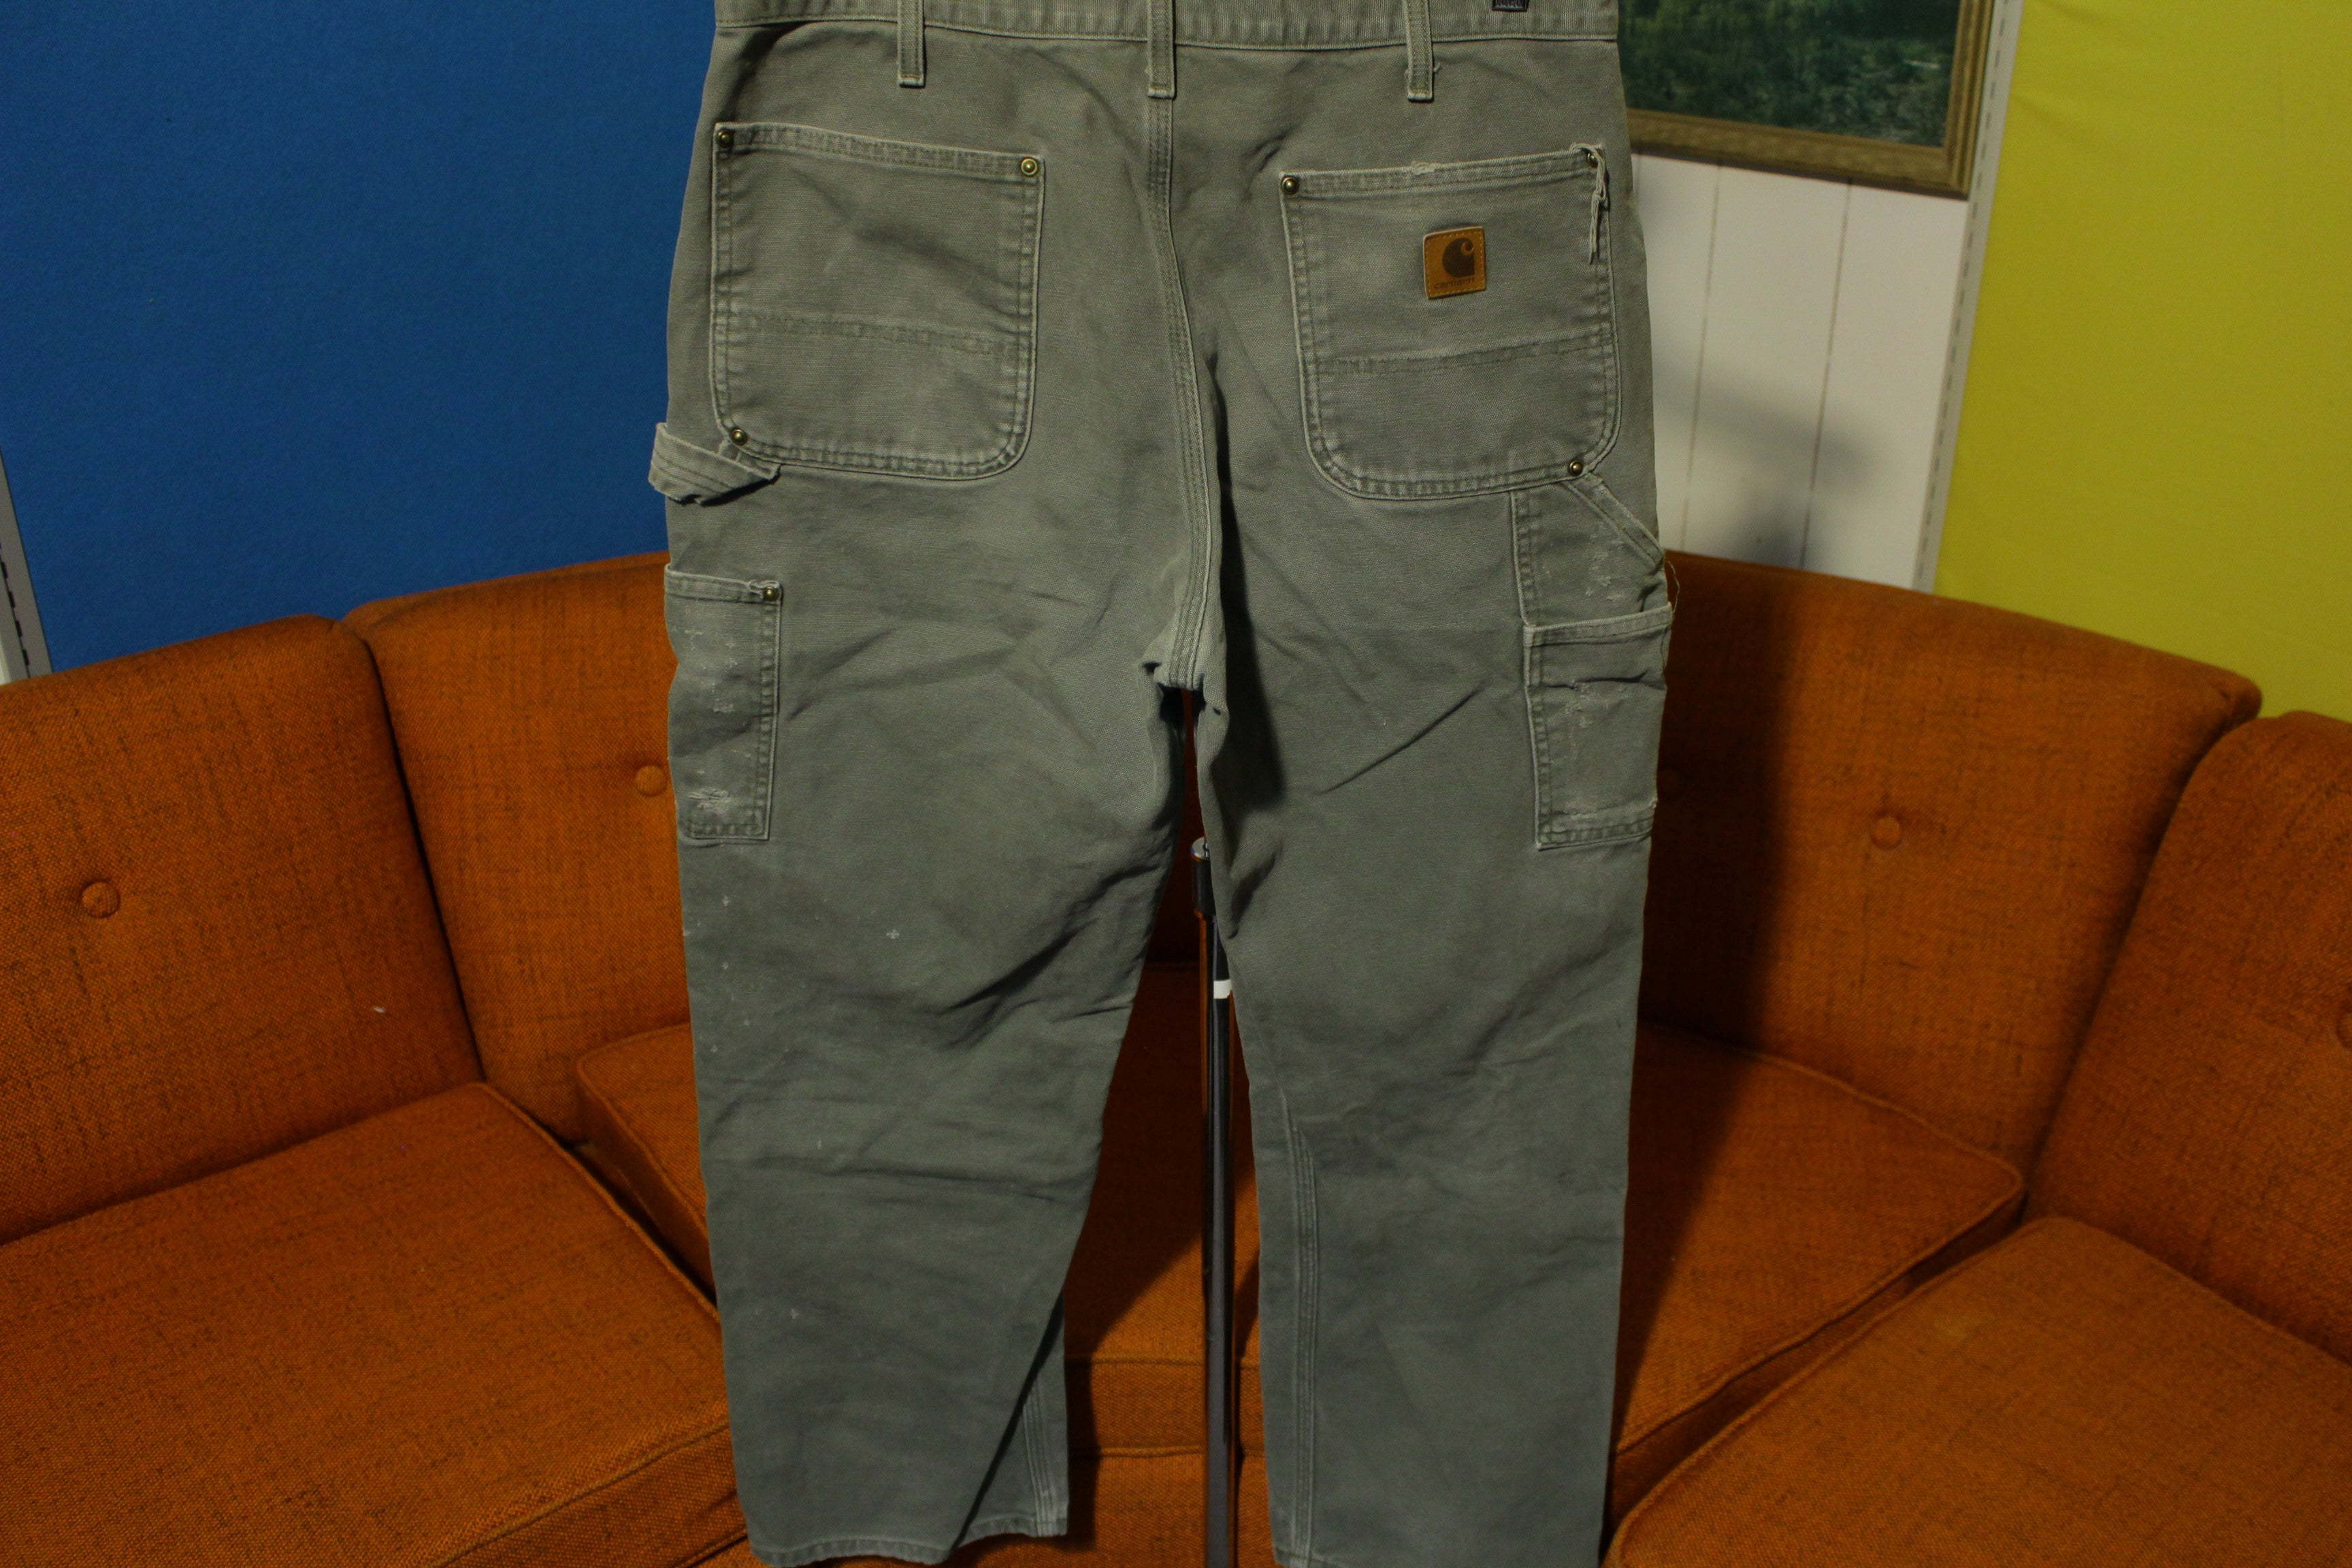 Carhartt B136 MOS 33x30 Washed Duck Work Pants Distressed! Canvas Double Front